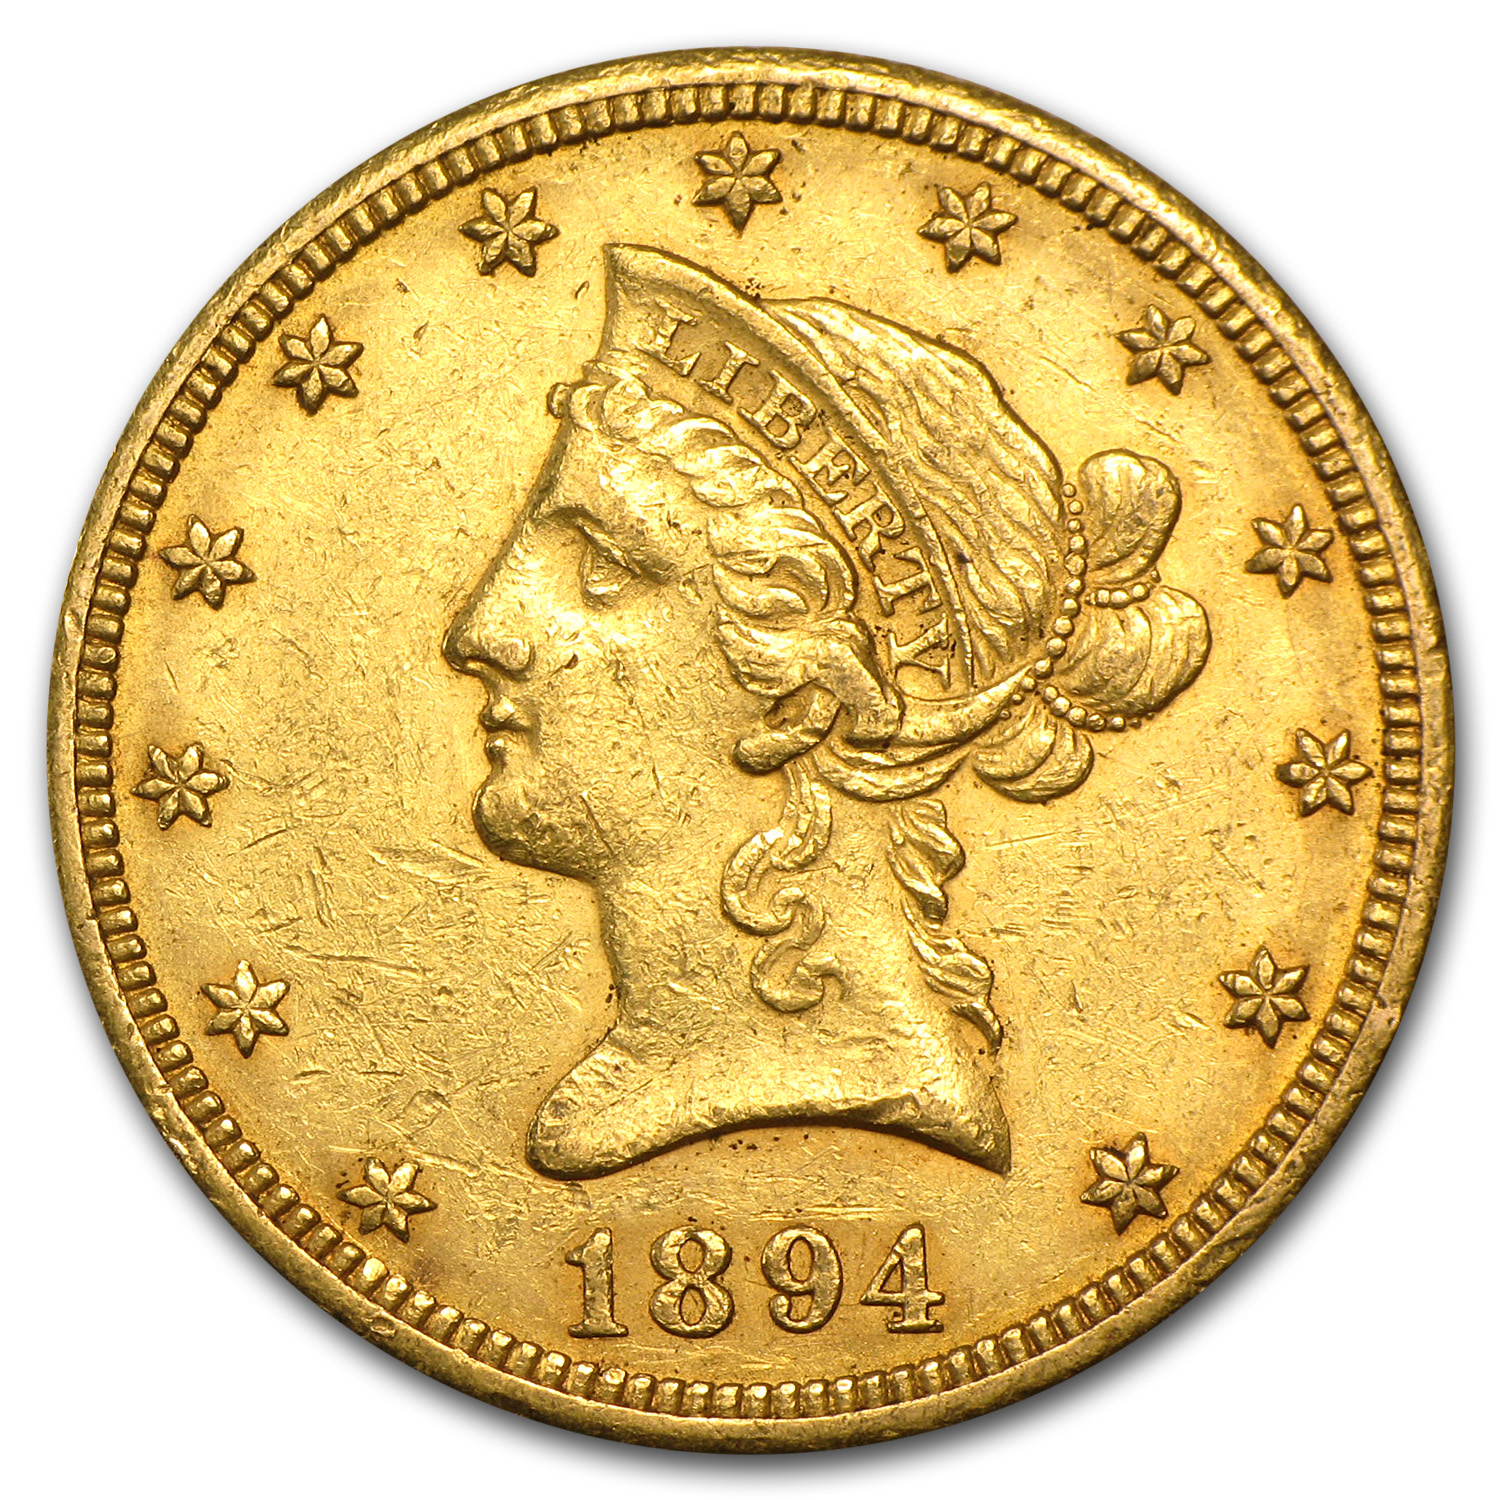 1894-O $10 Liberty Gold Eagle - Almost Uncirculated